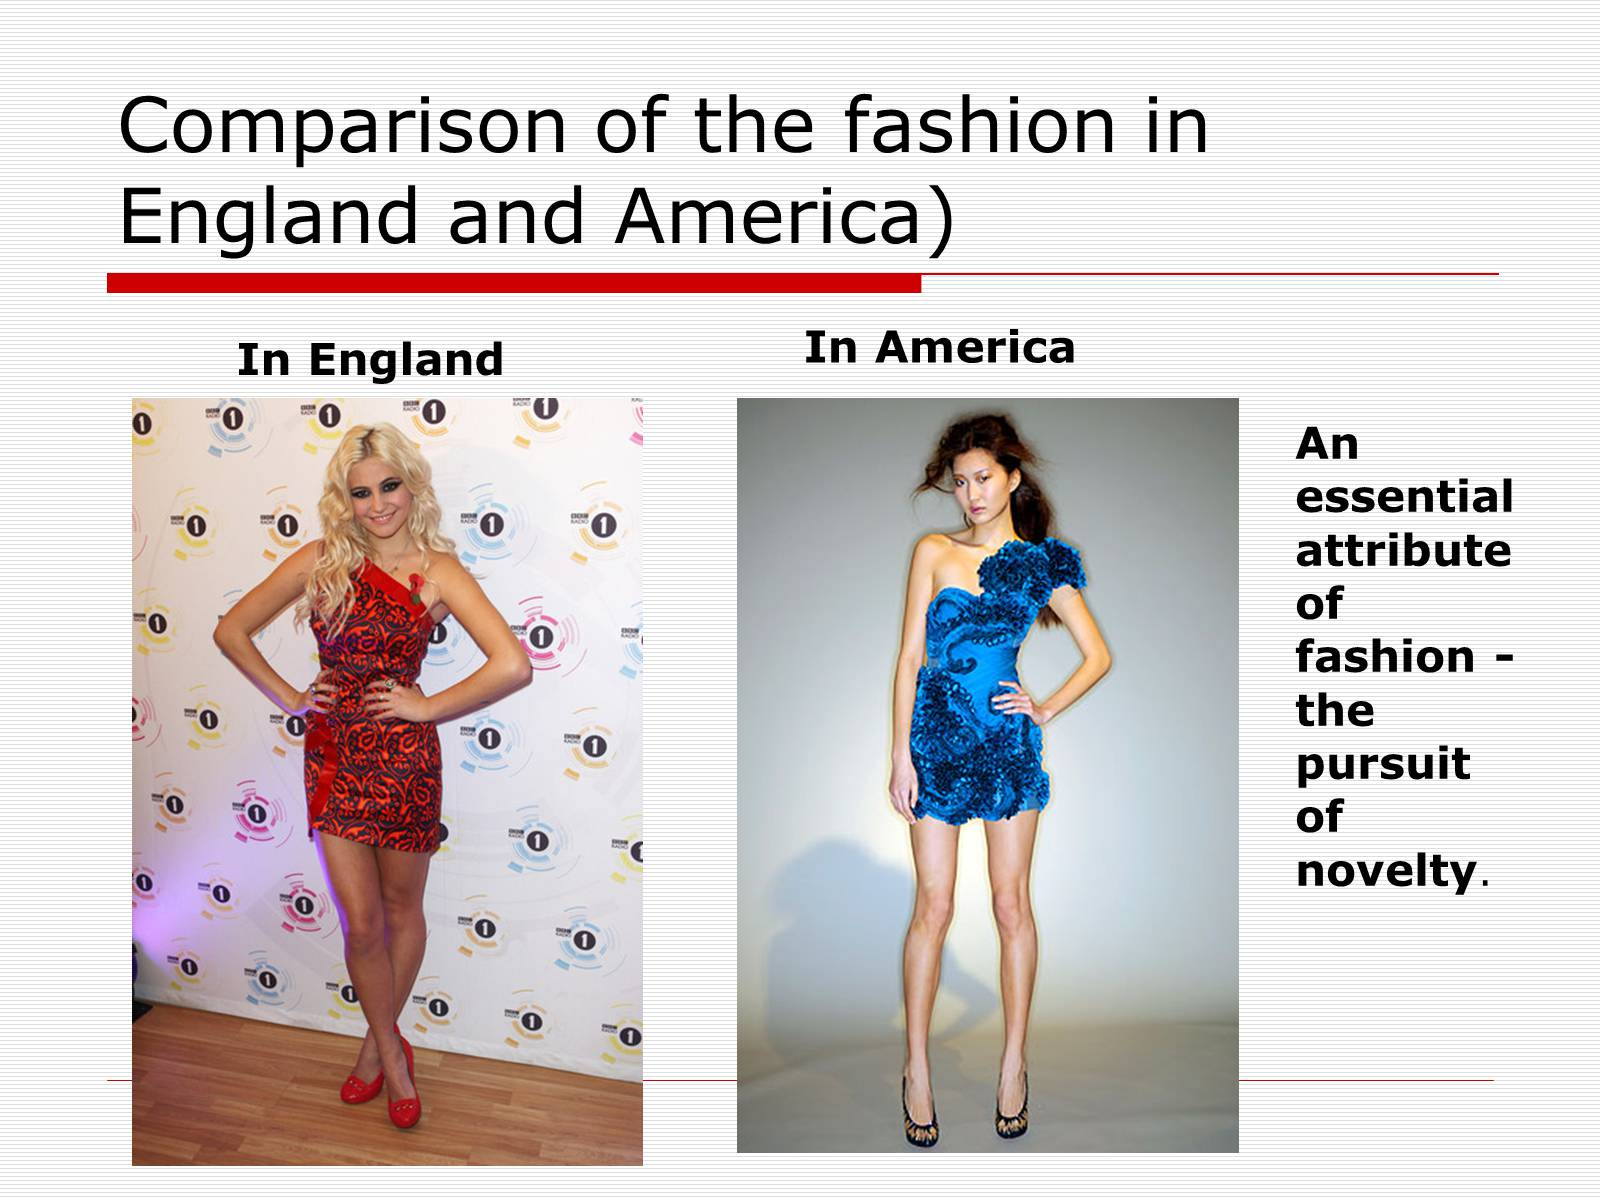 Презентація на тему «Comparison of the fashion in England and America» - Слайд #30